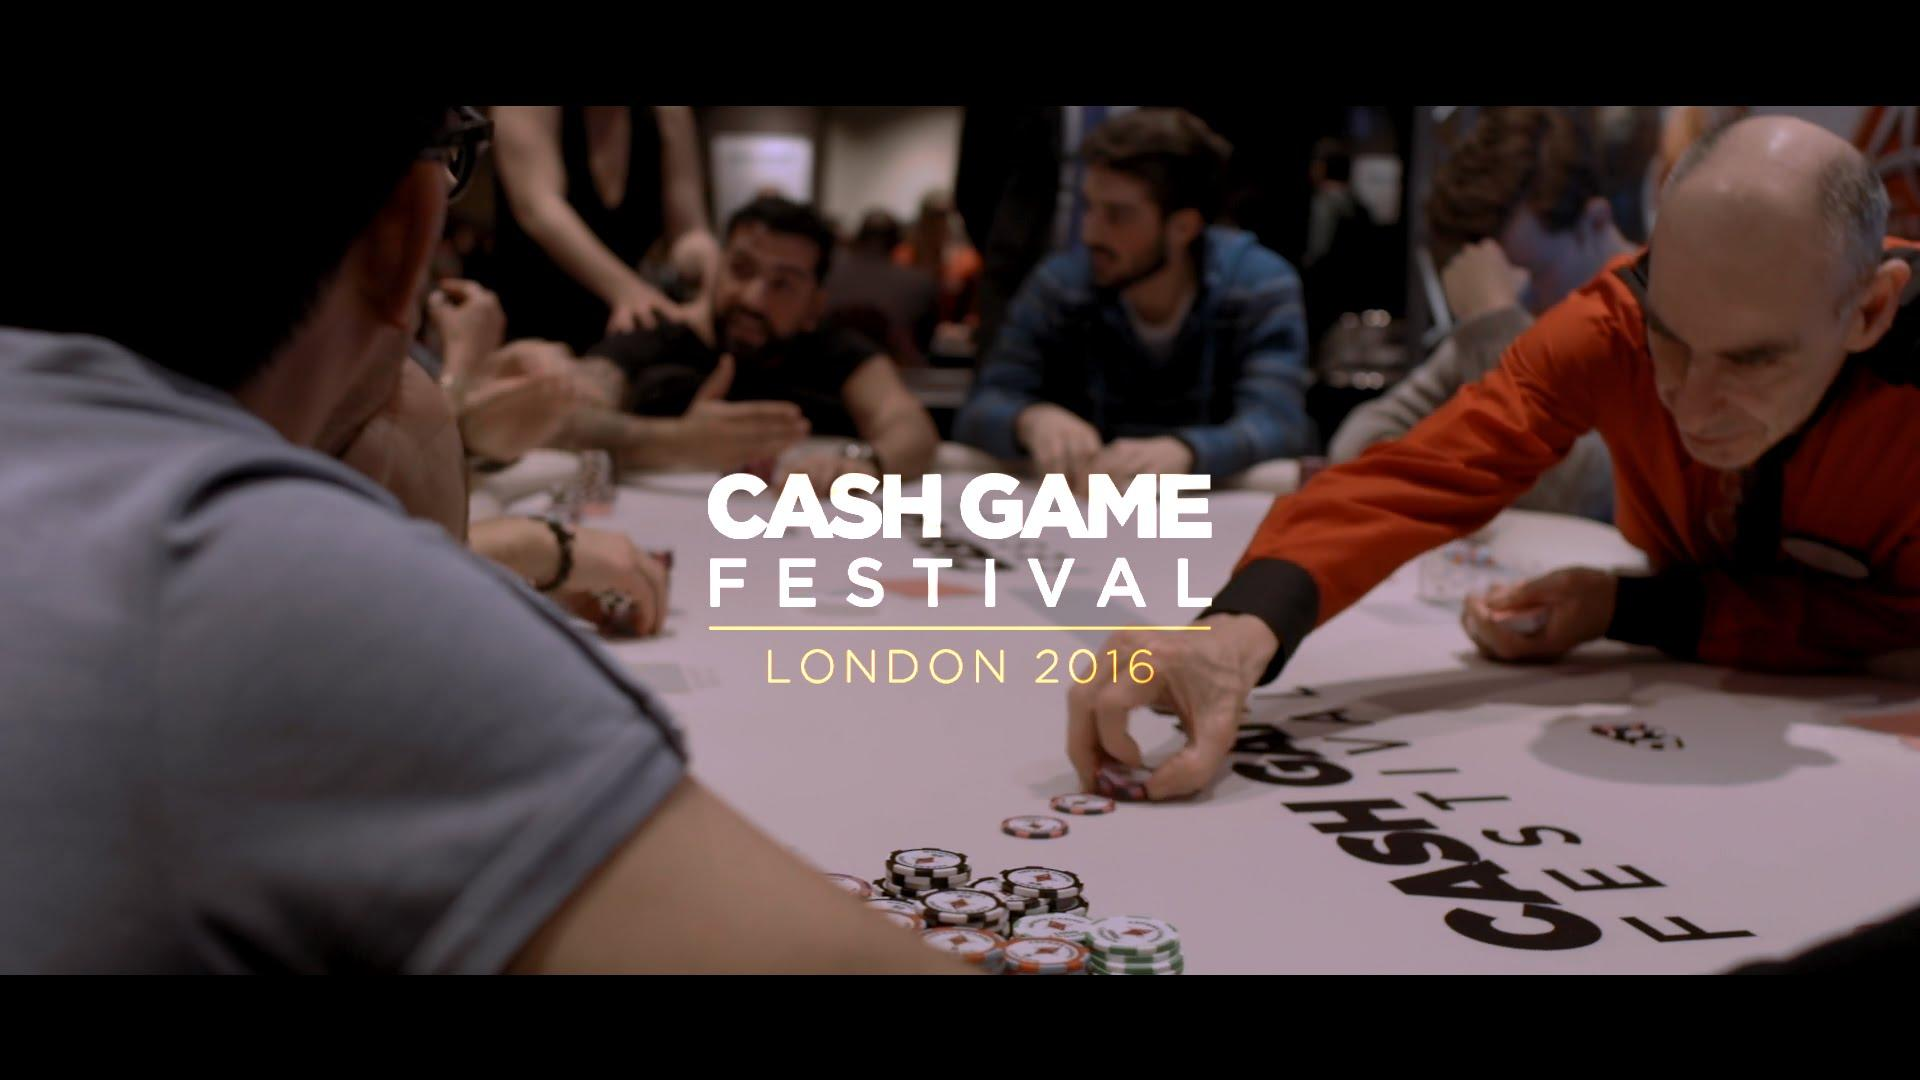 London Cash Game Festival 2016 - Aftermovie